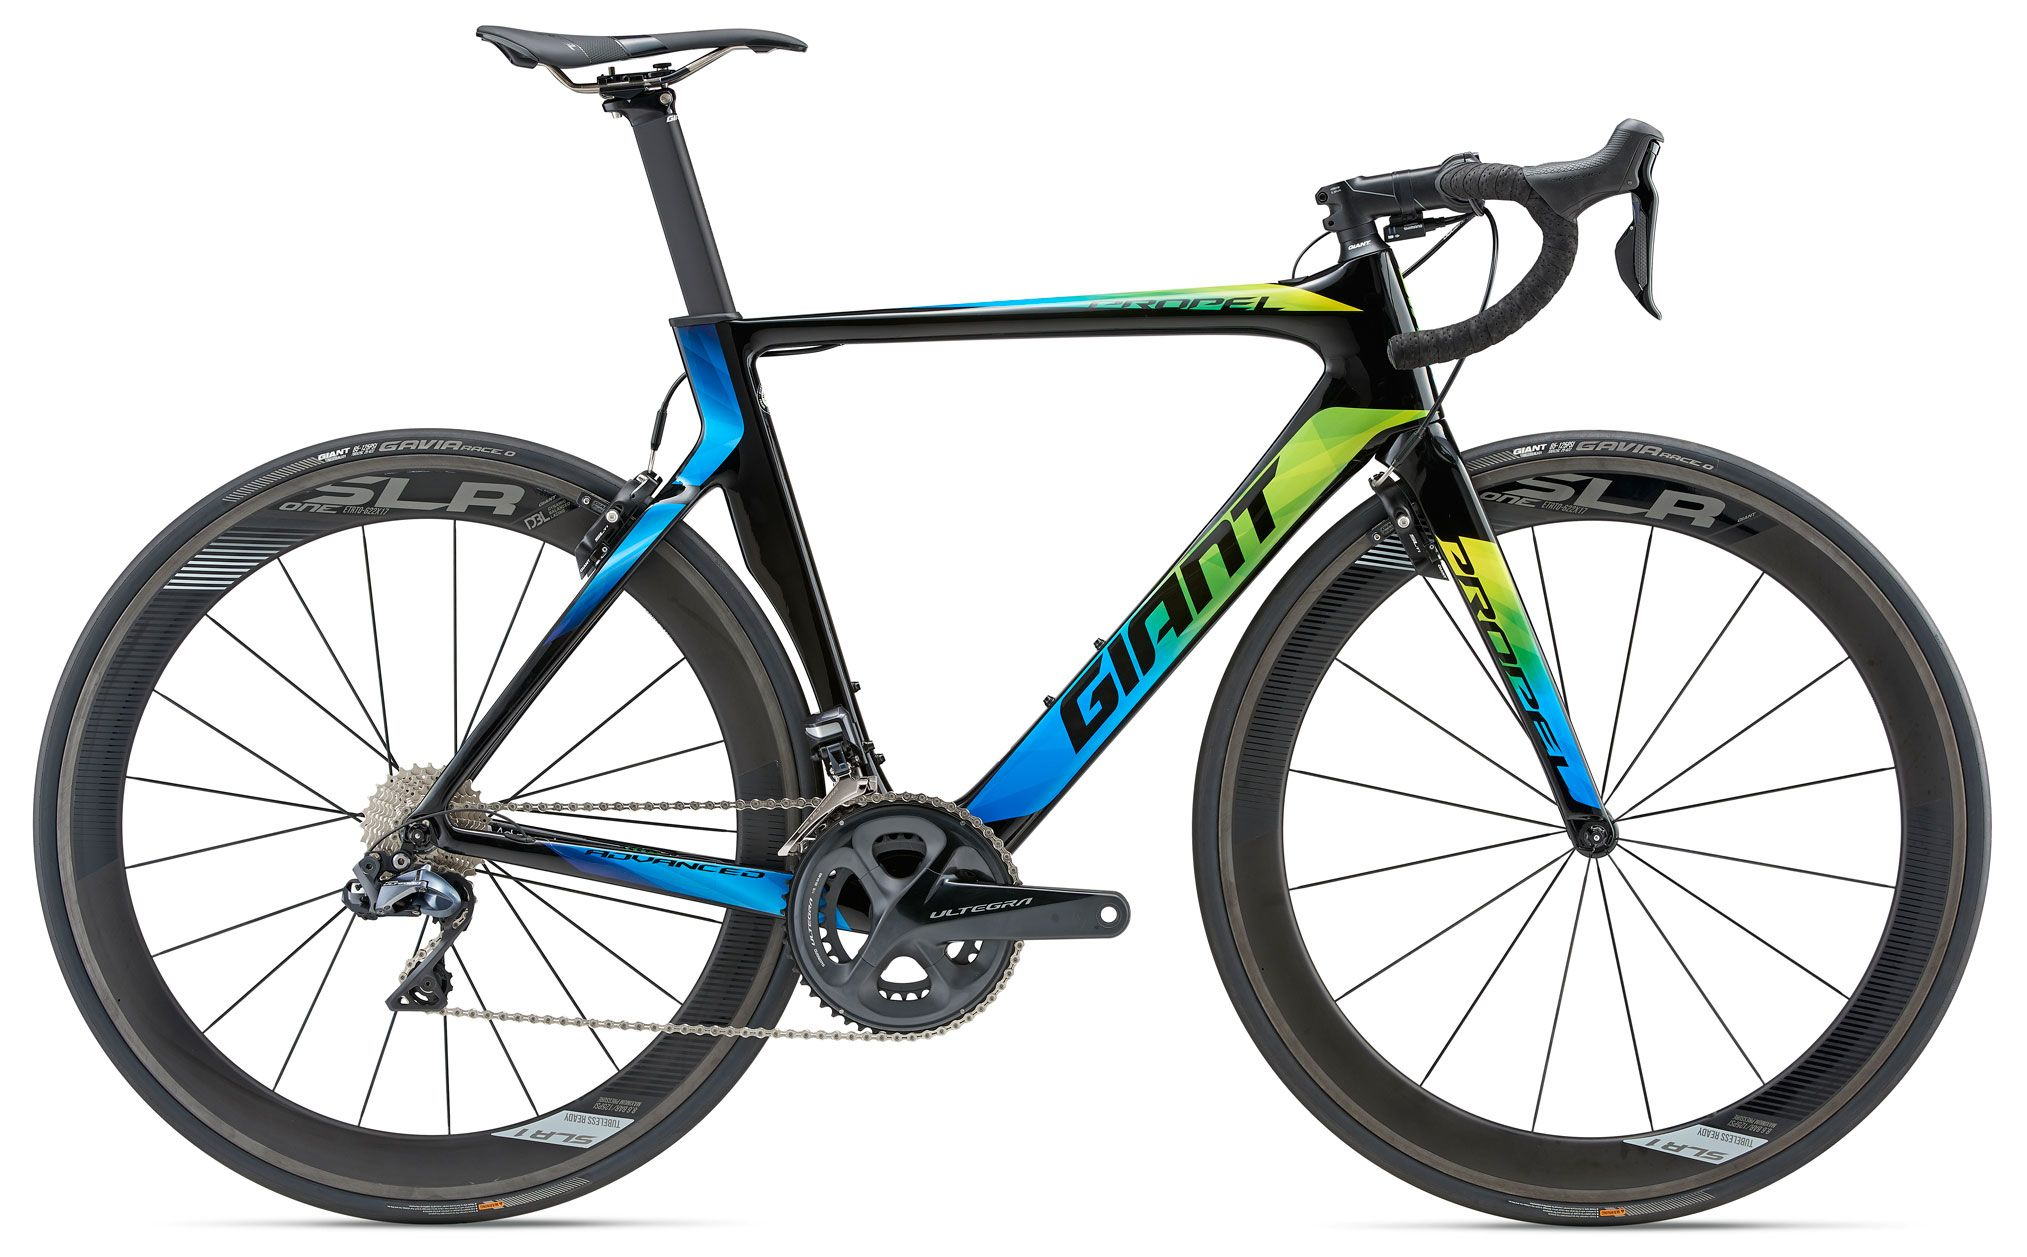 цена на Велосипед Giant Propel Advanced Pro 0 2018